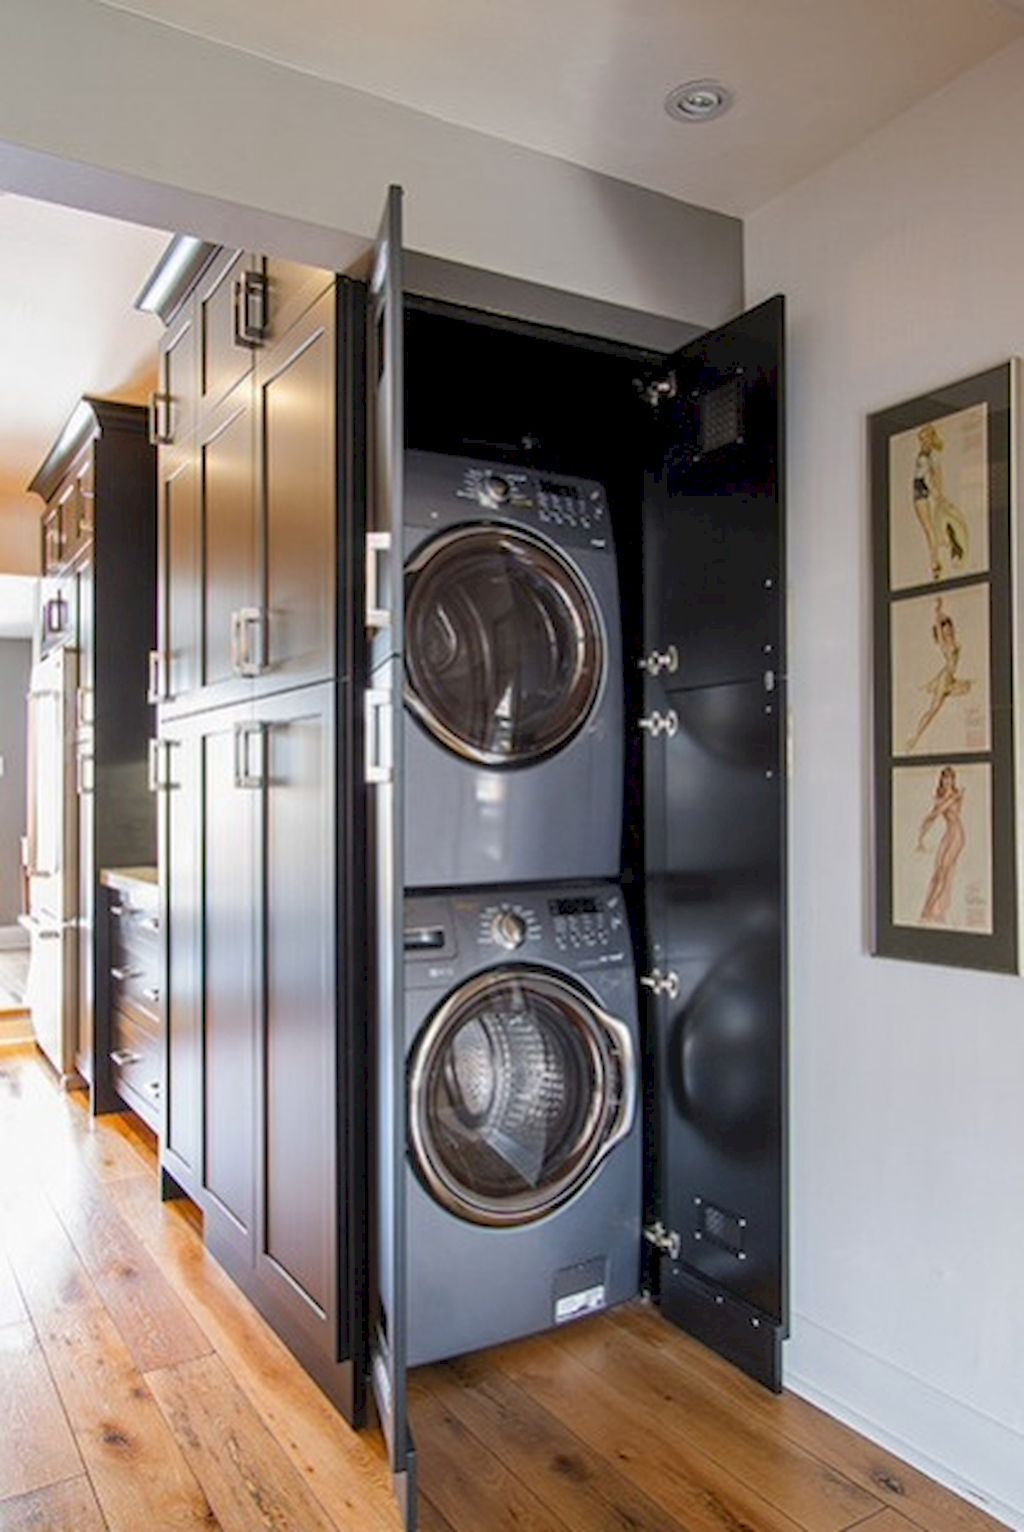 60 Amazing Tiny Apartment Laundry Room Decor Ideas | Tiny apartments ...